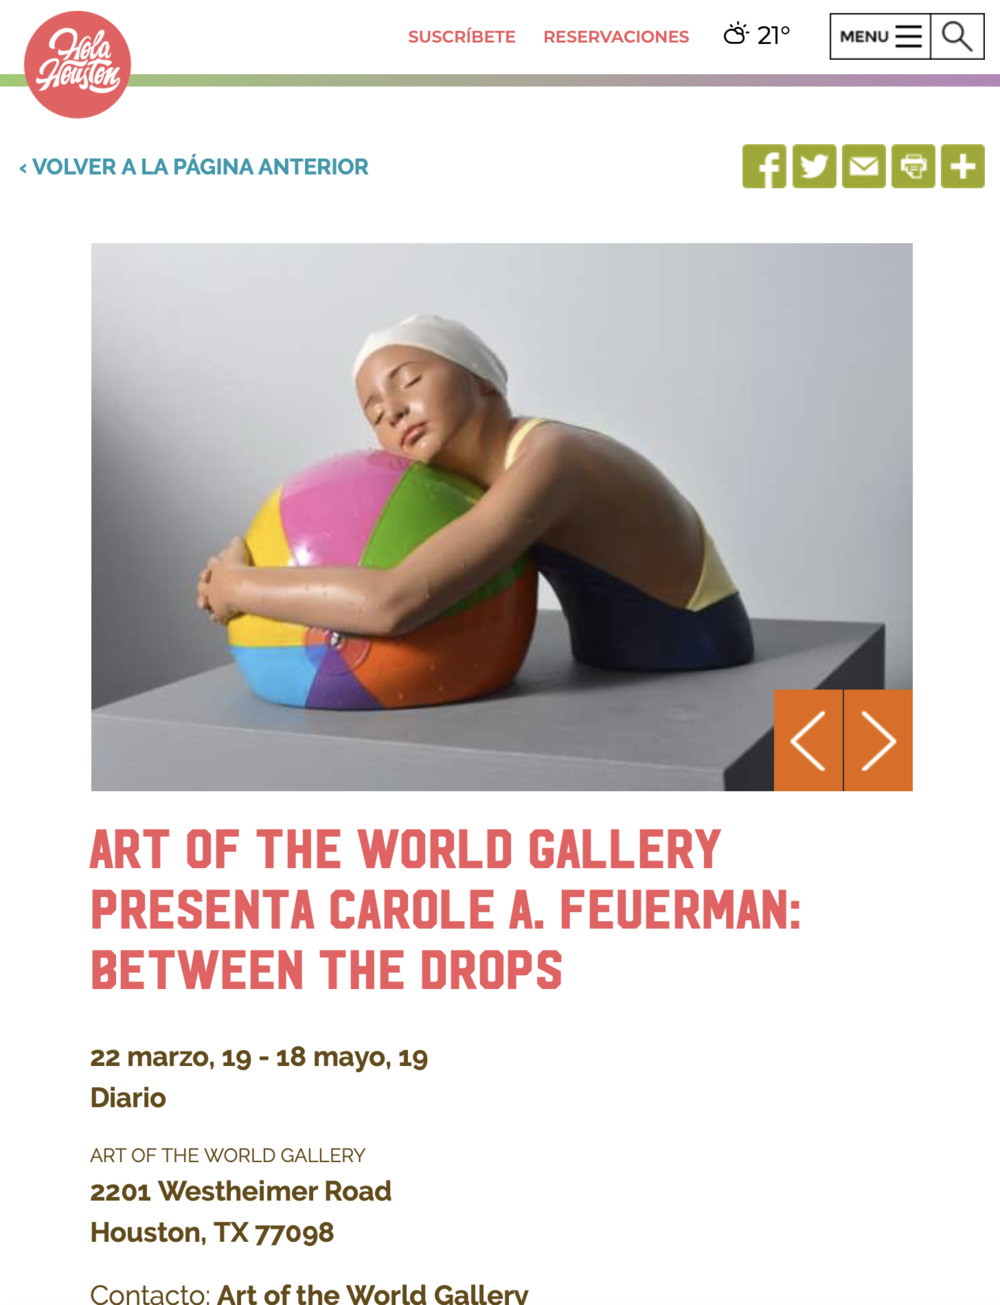 Art of the World Gallery presenta Carole A. Feuerman: Between the Drops